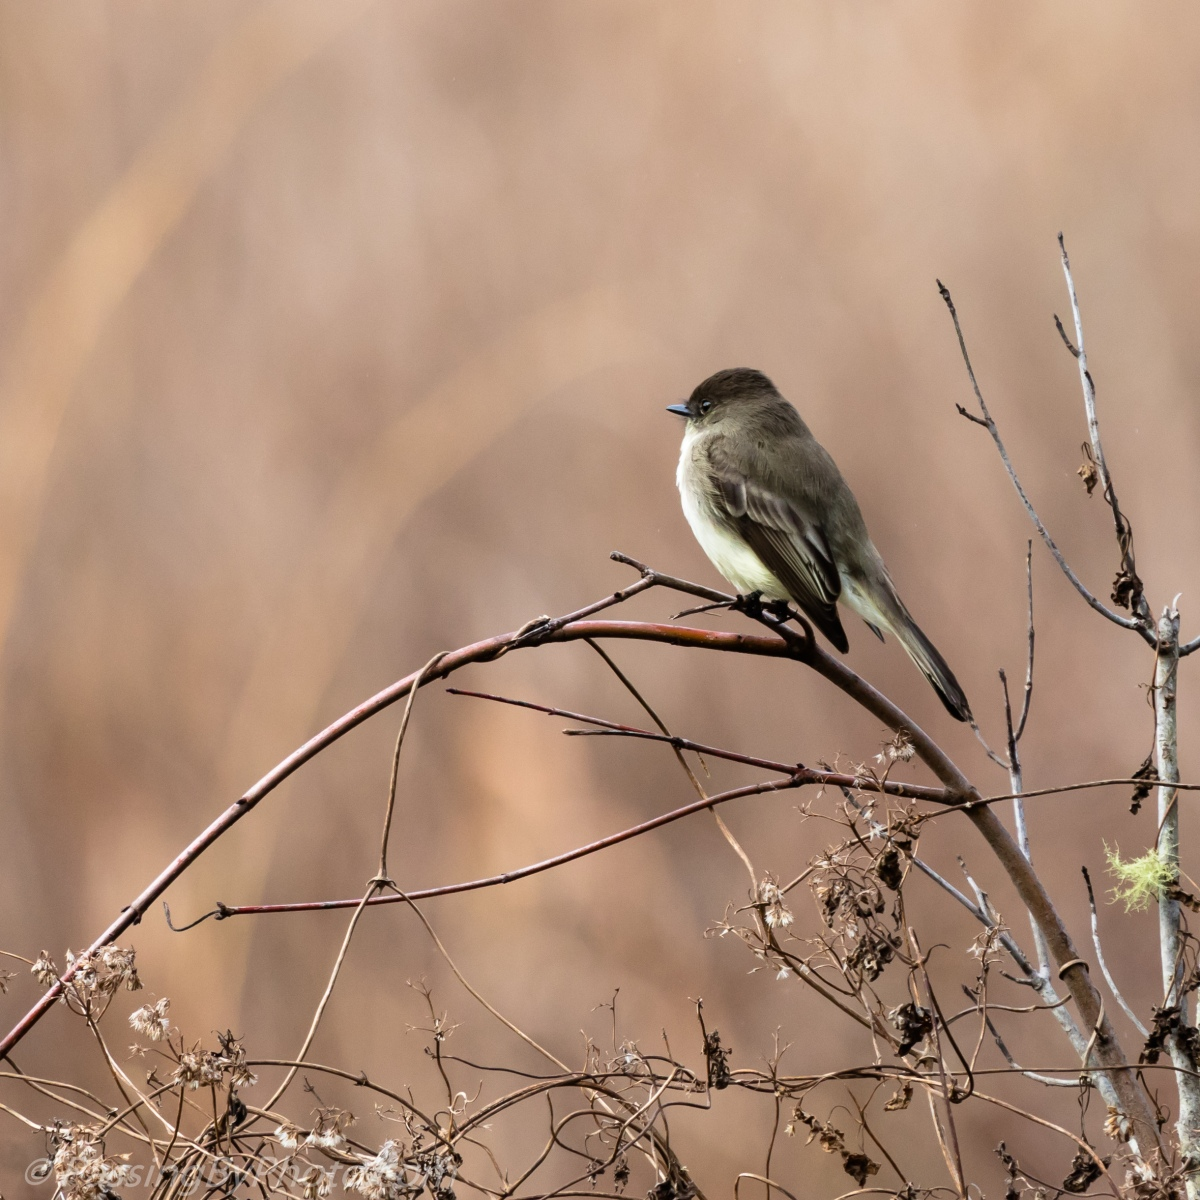 Eastern Phoebe, Blue and Brown